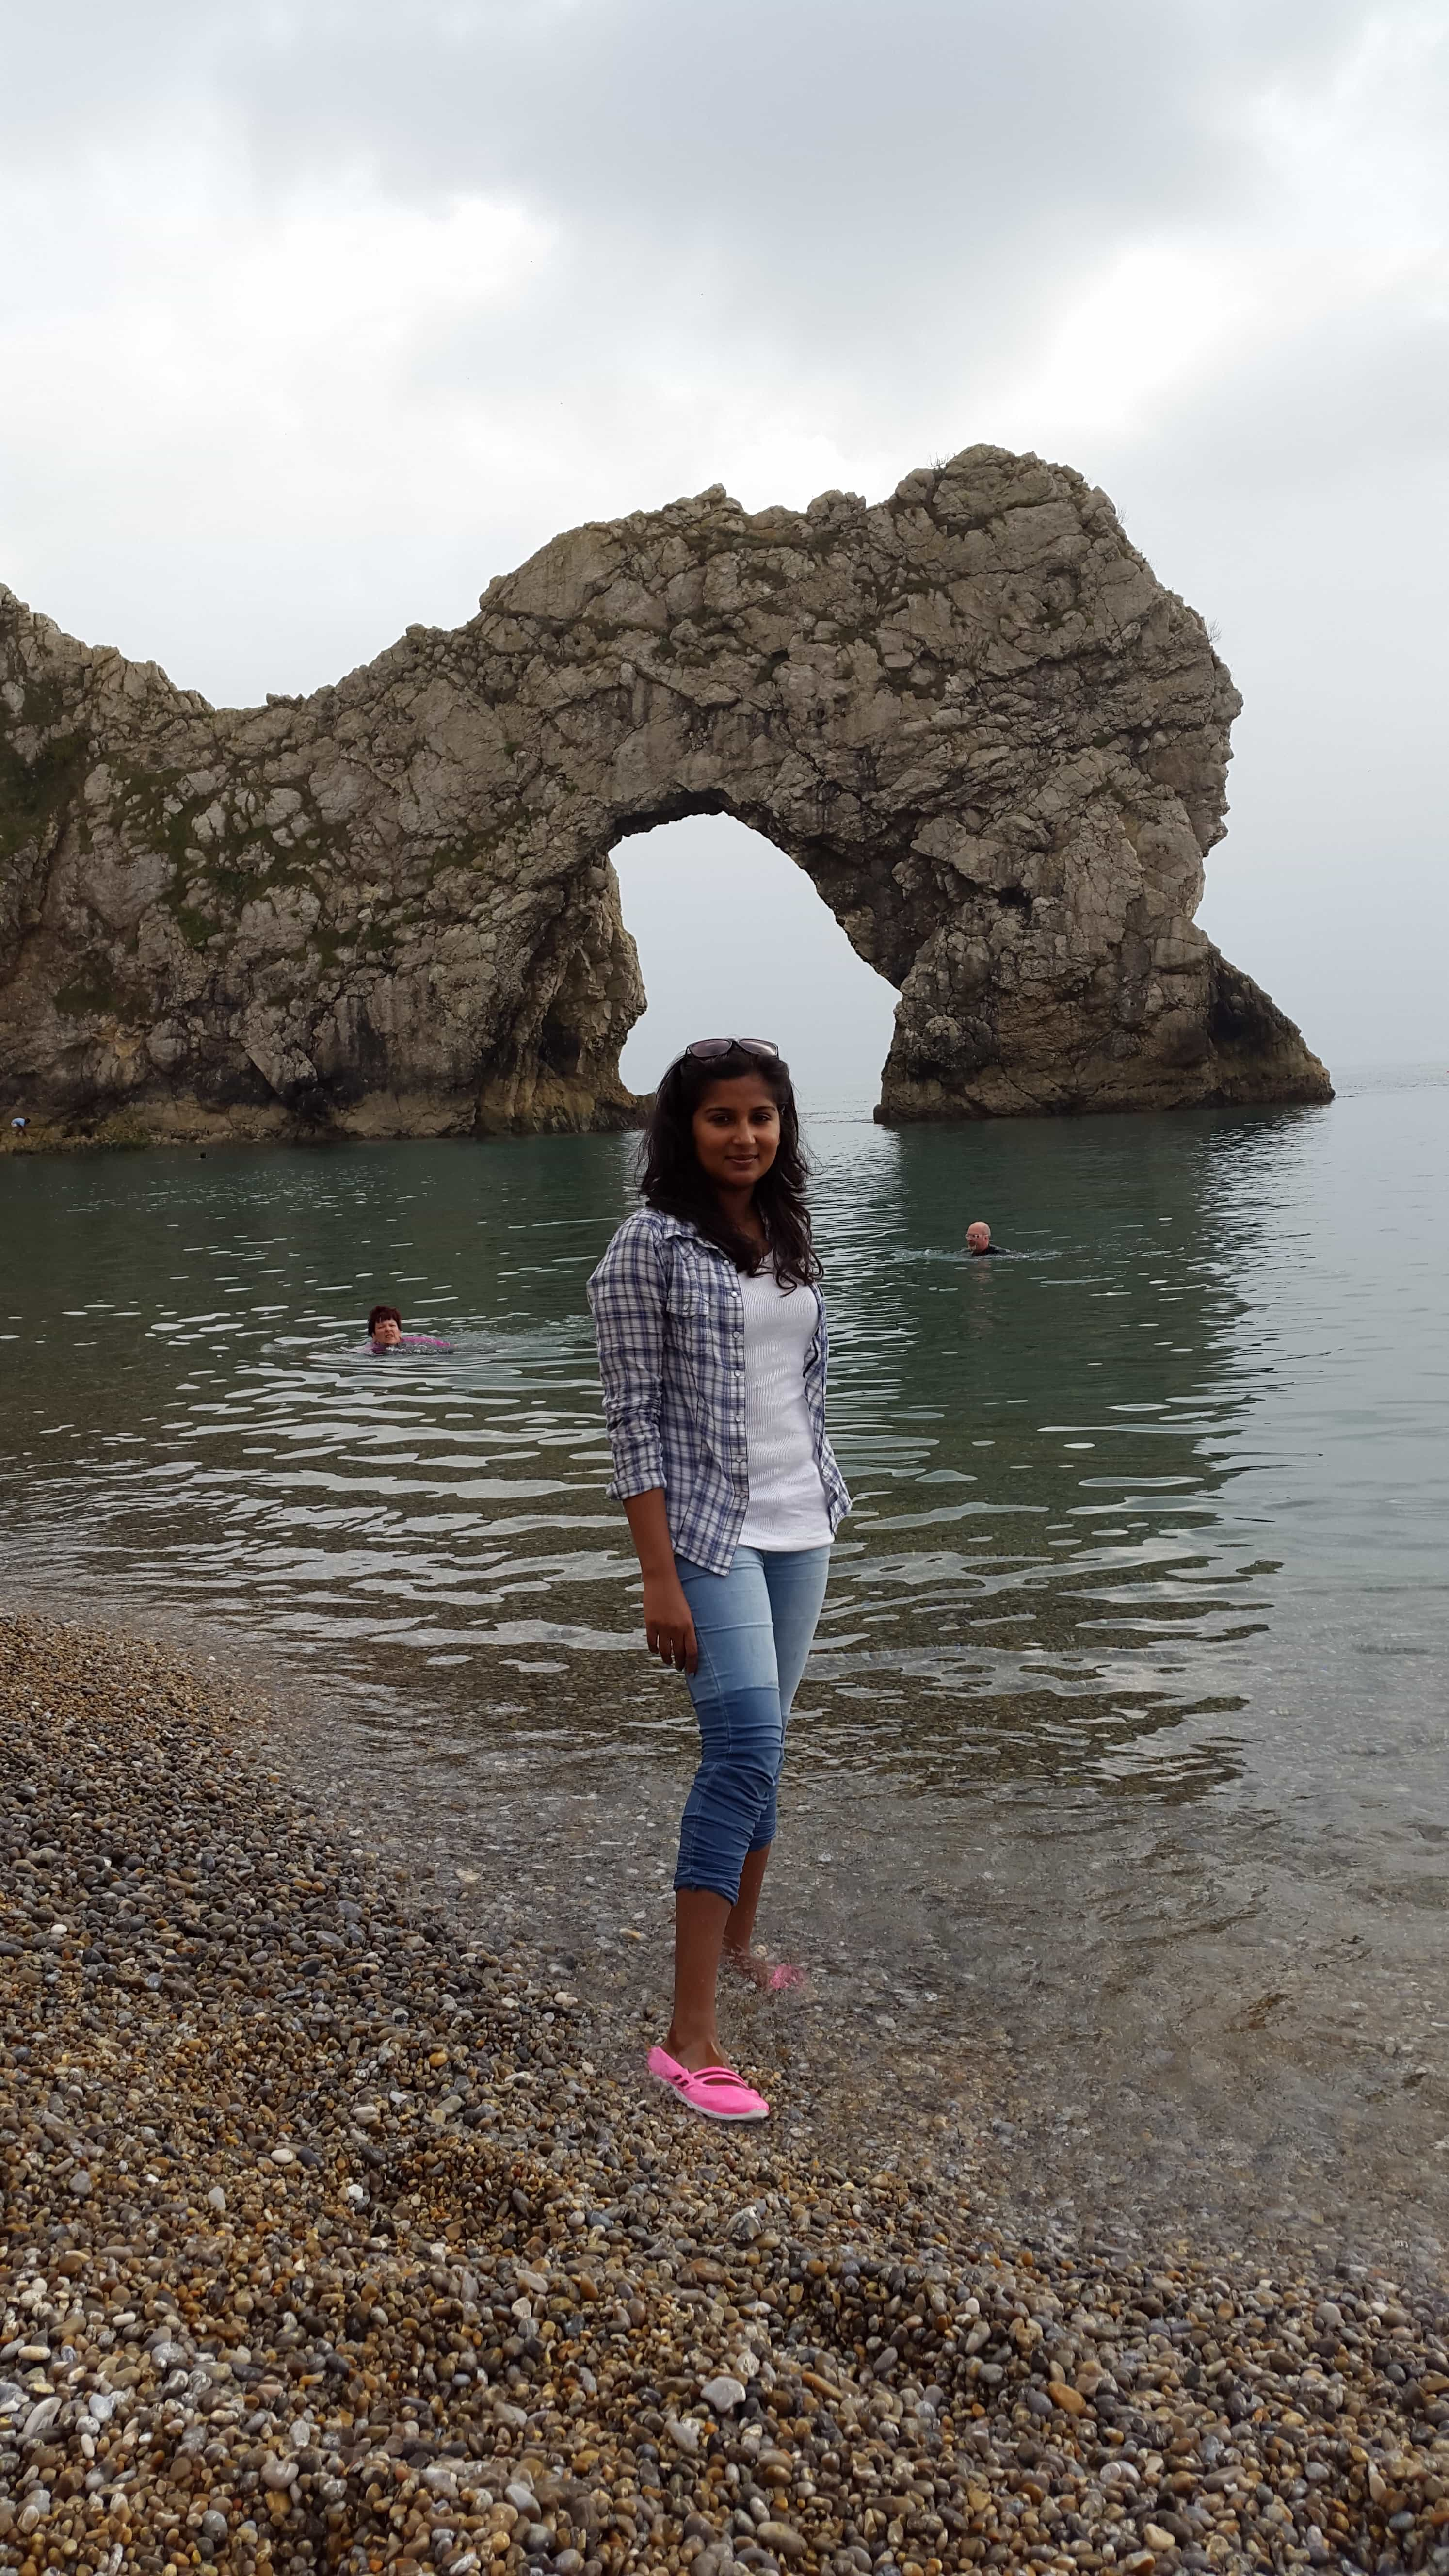 Durdle door, Dorset, Jurassic Coast, UNESCO world heritage, Lulworth Cove